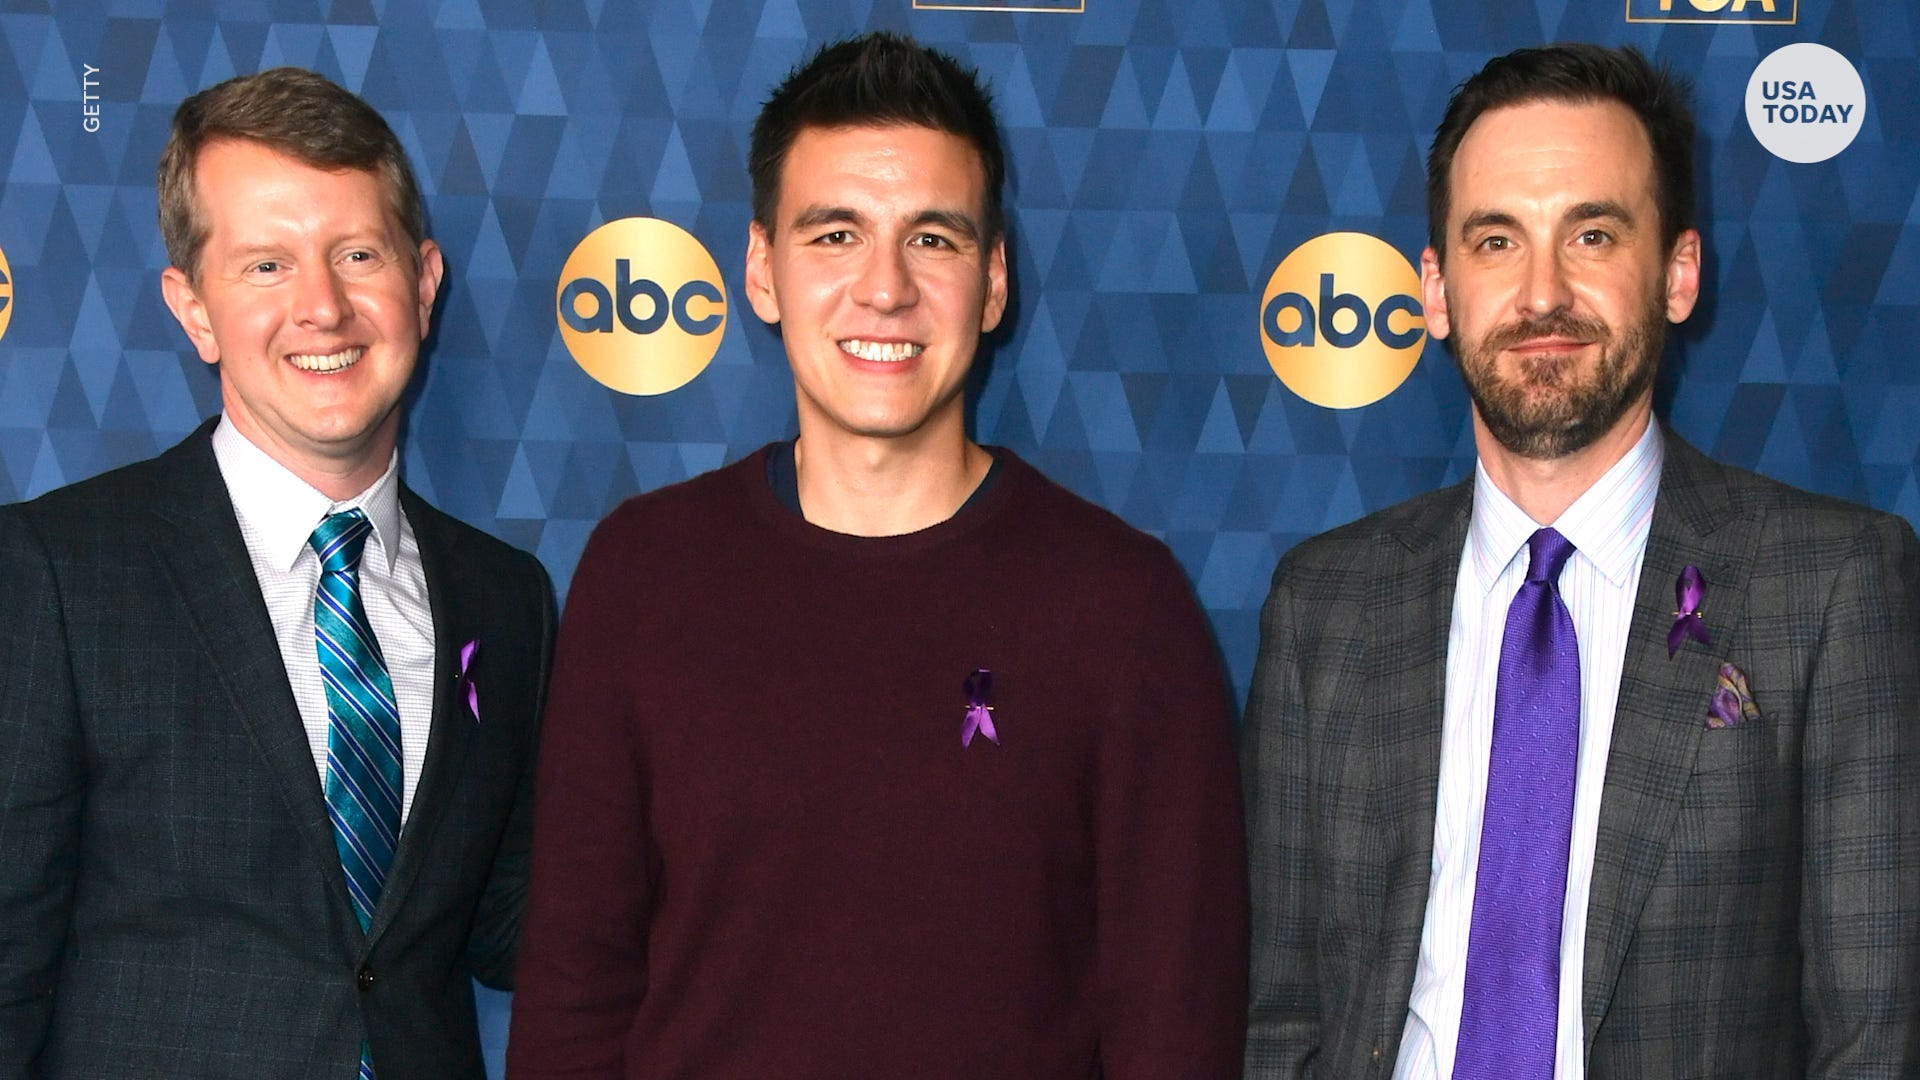 Jeopardy! Goat >> Jeopardy Greatest Of All Time Features Trio Of Biggest Winners